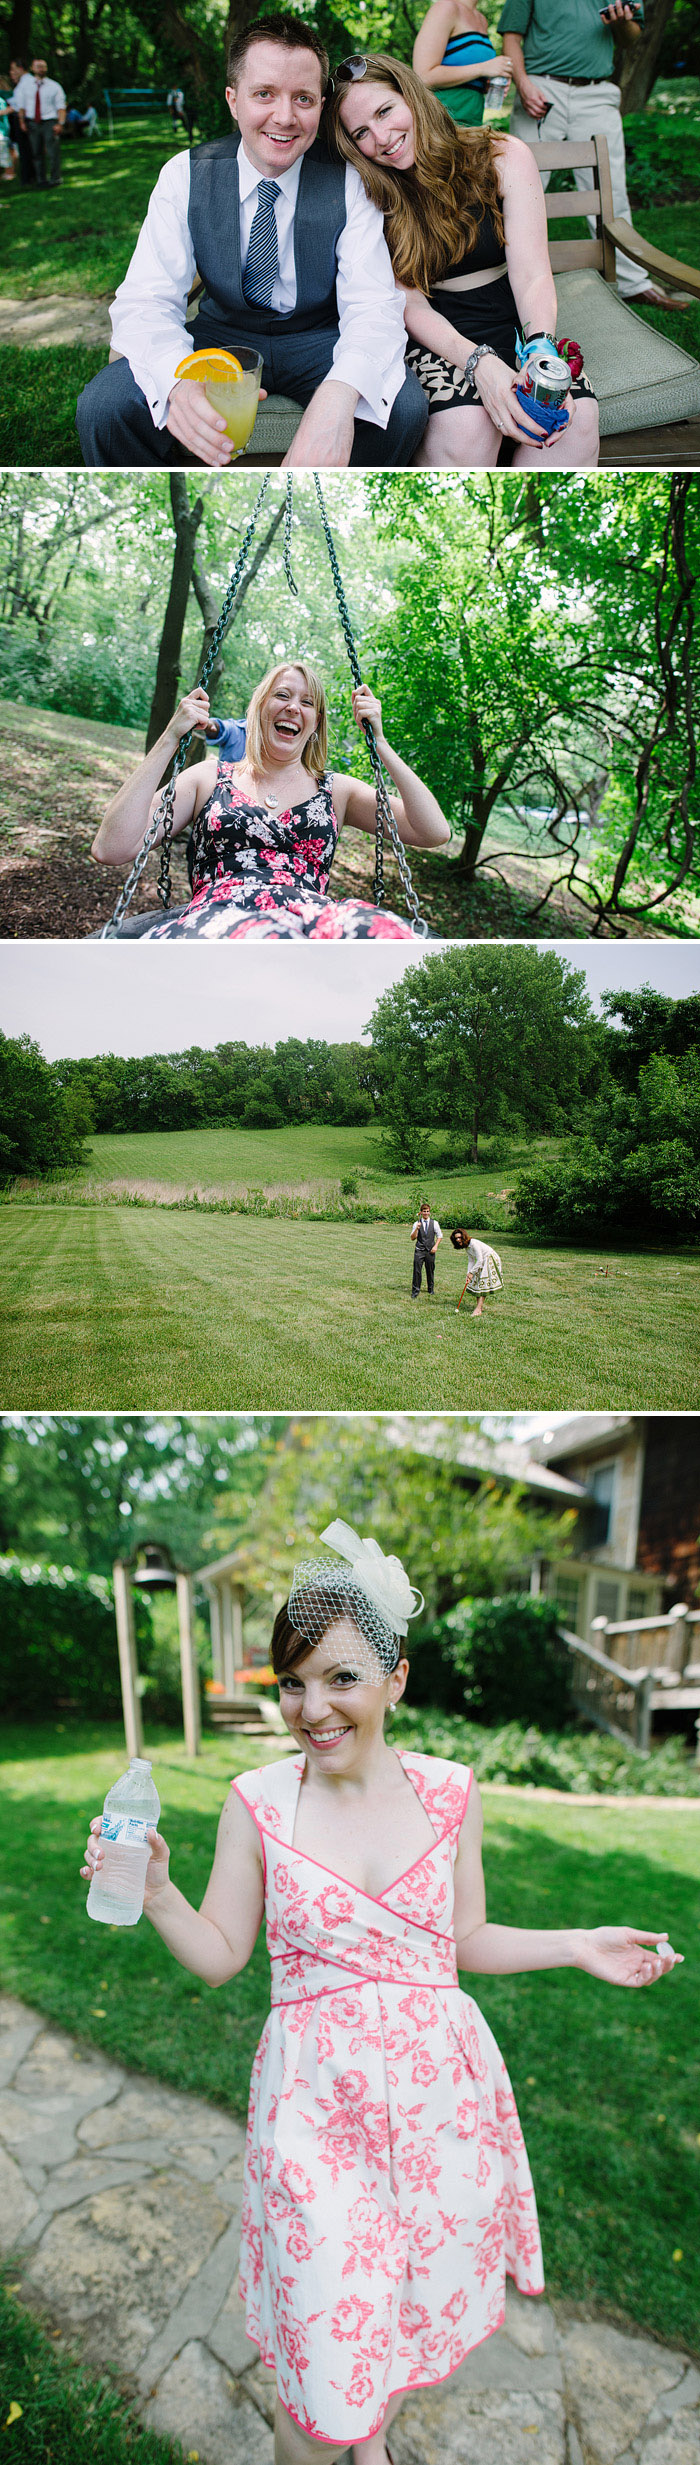 Lawn games at an outdoor wedding reception.